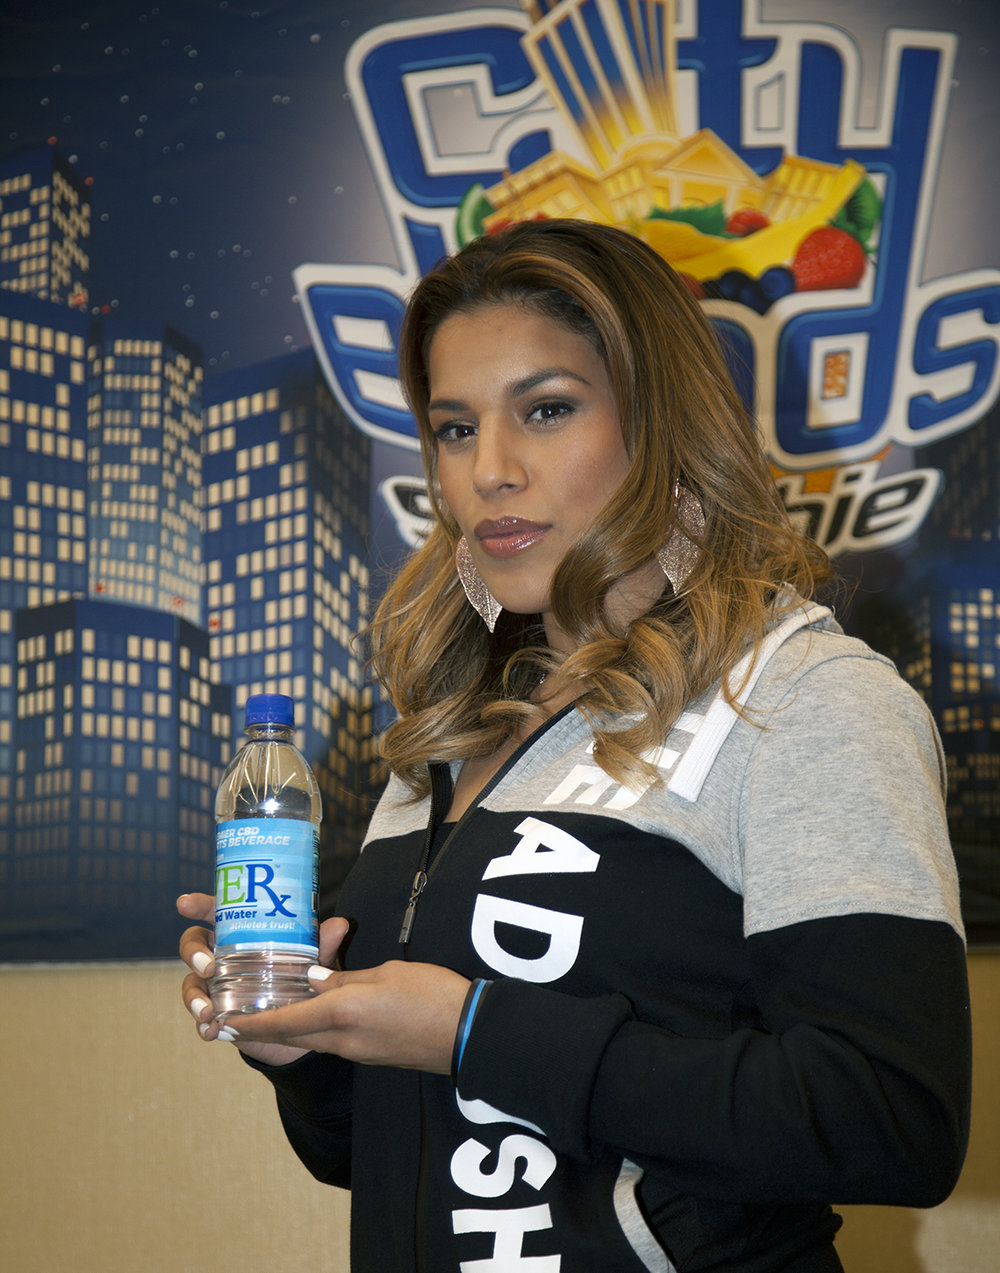 UFC #3 Ranked Women's Bantam Weight EVERx Spokesperson Juliana Pena